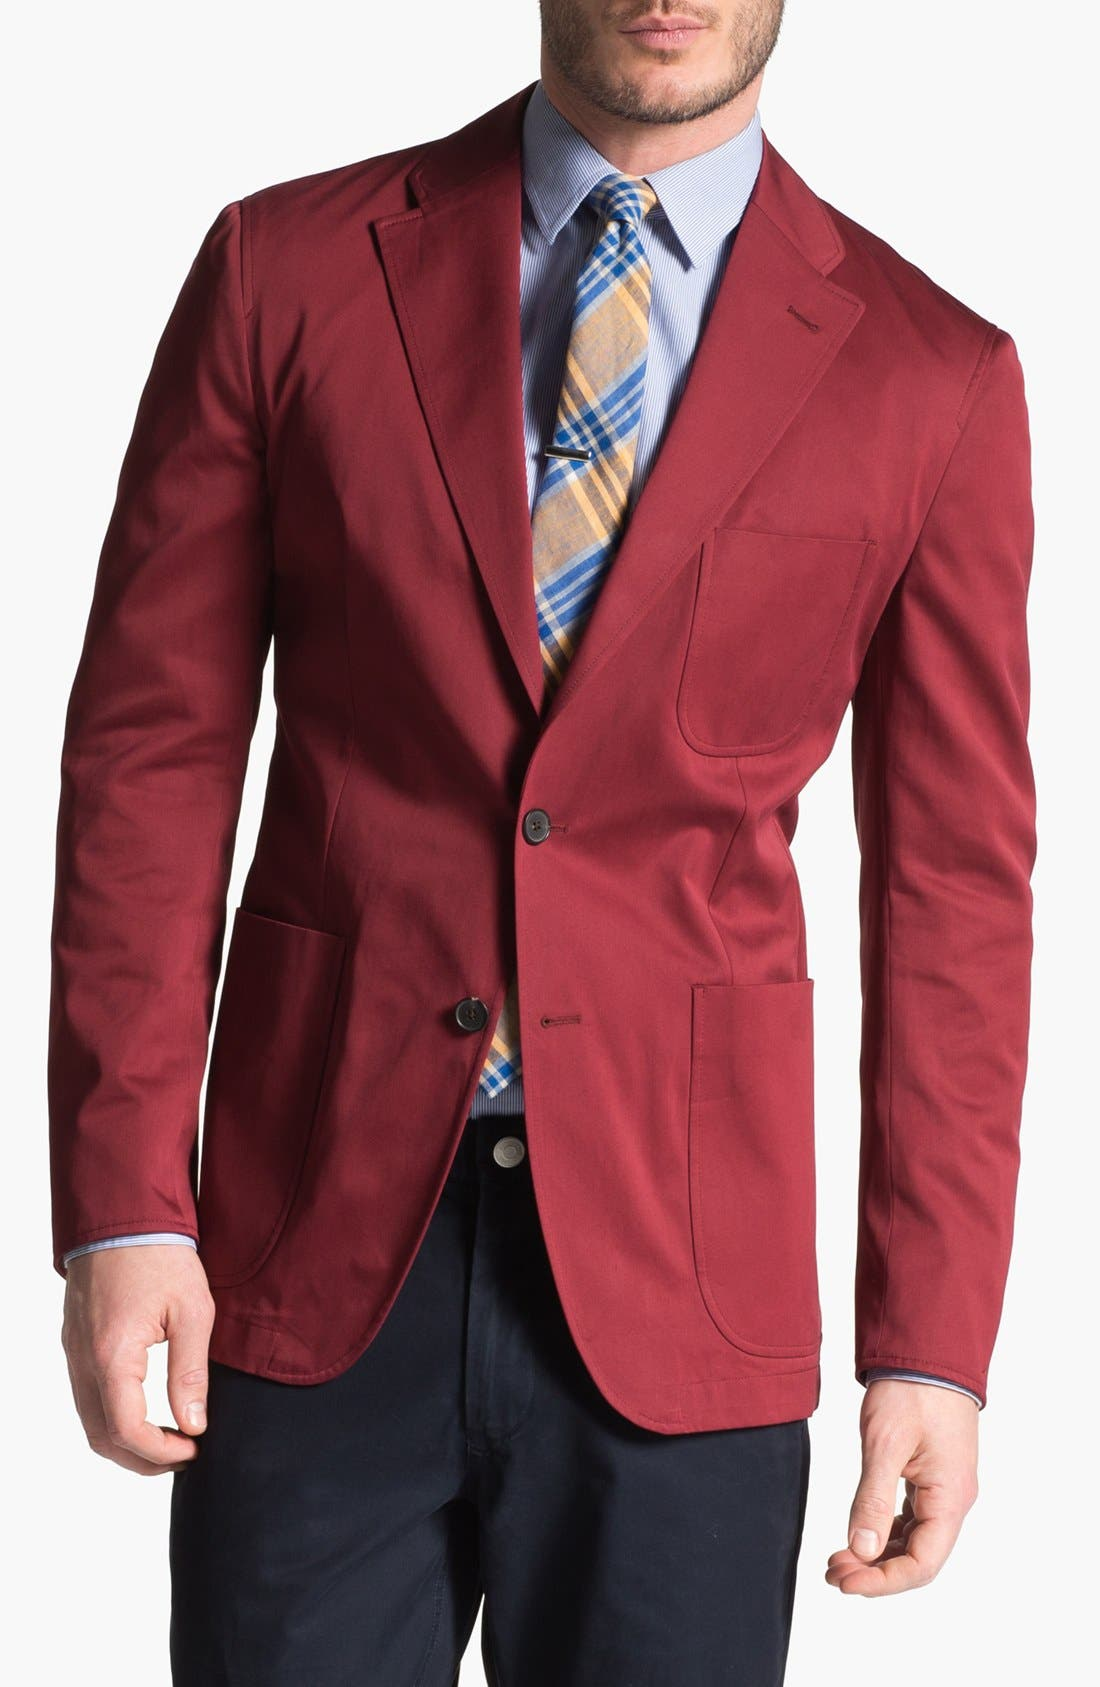 Alternate Image 1 Selected - Joseph Abboud Trim Fit Cotton Blazer